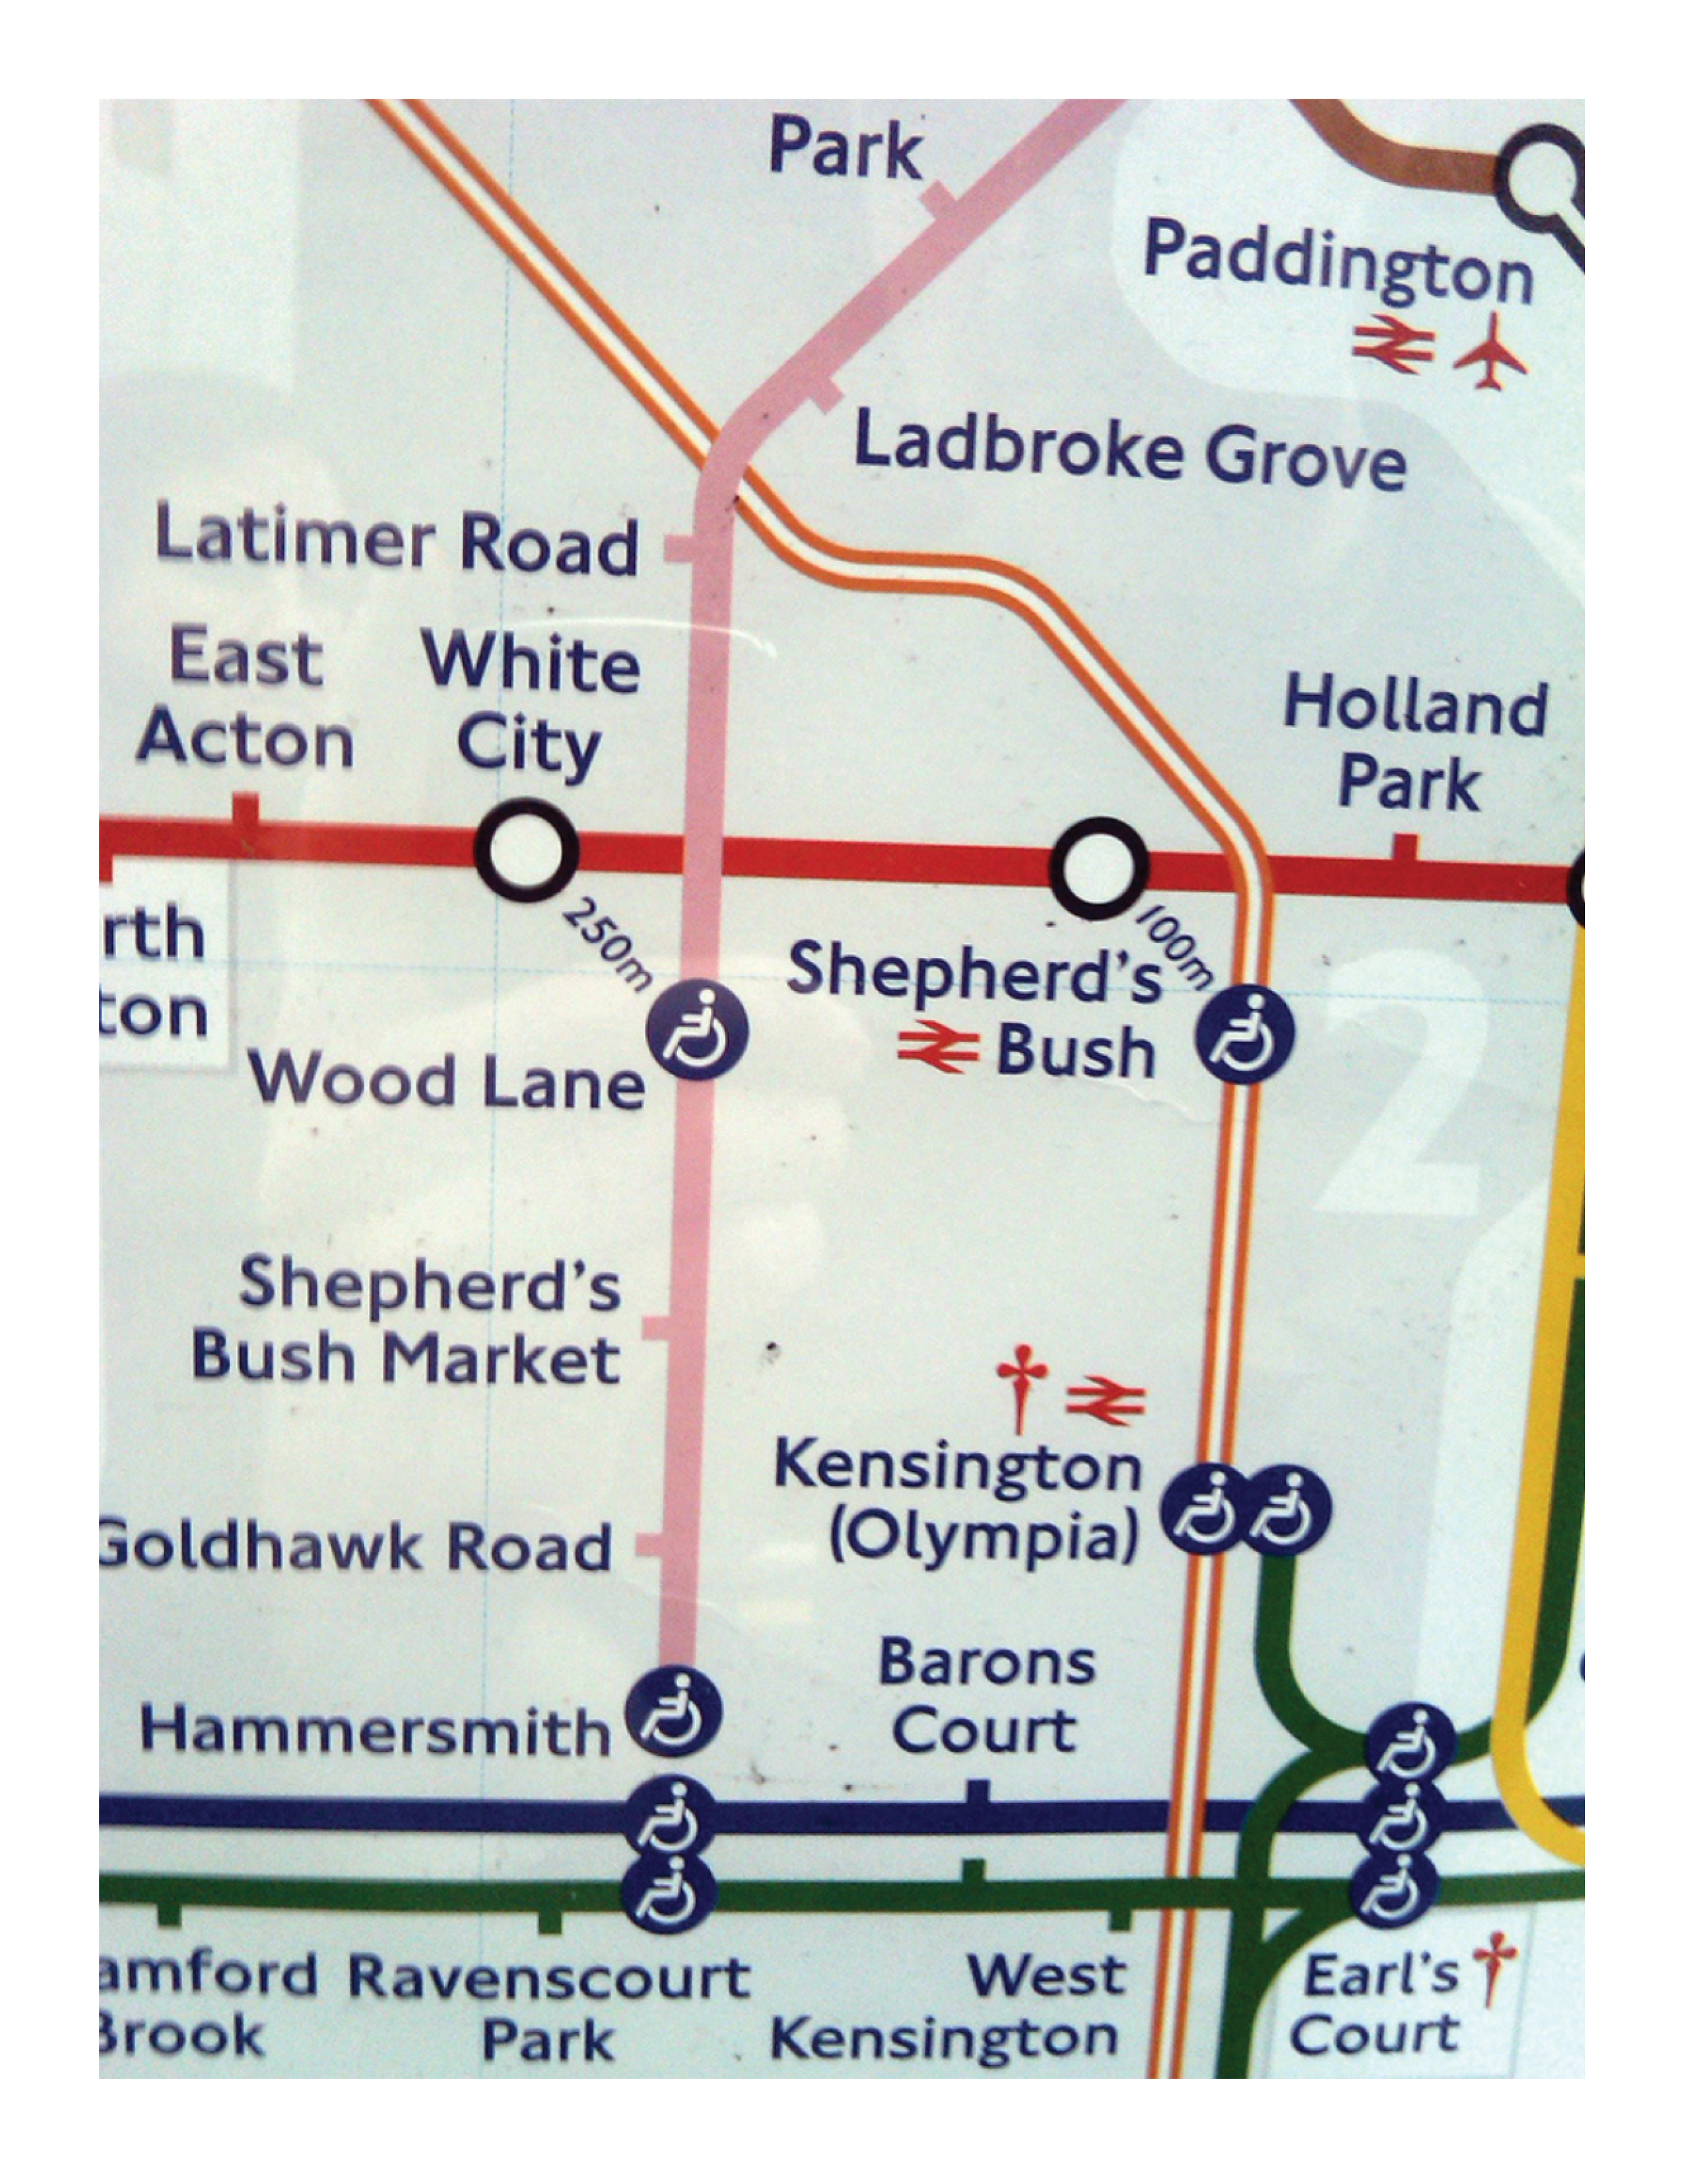 London tube 2008 distance markers